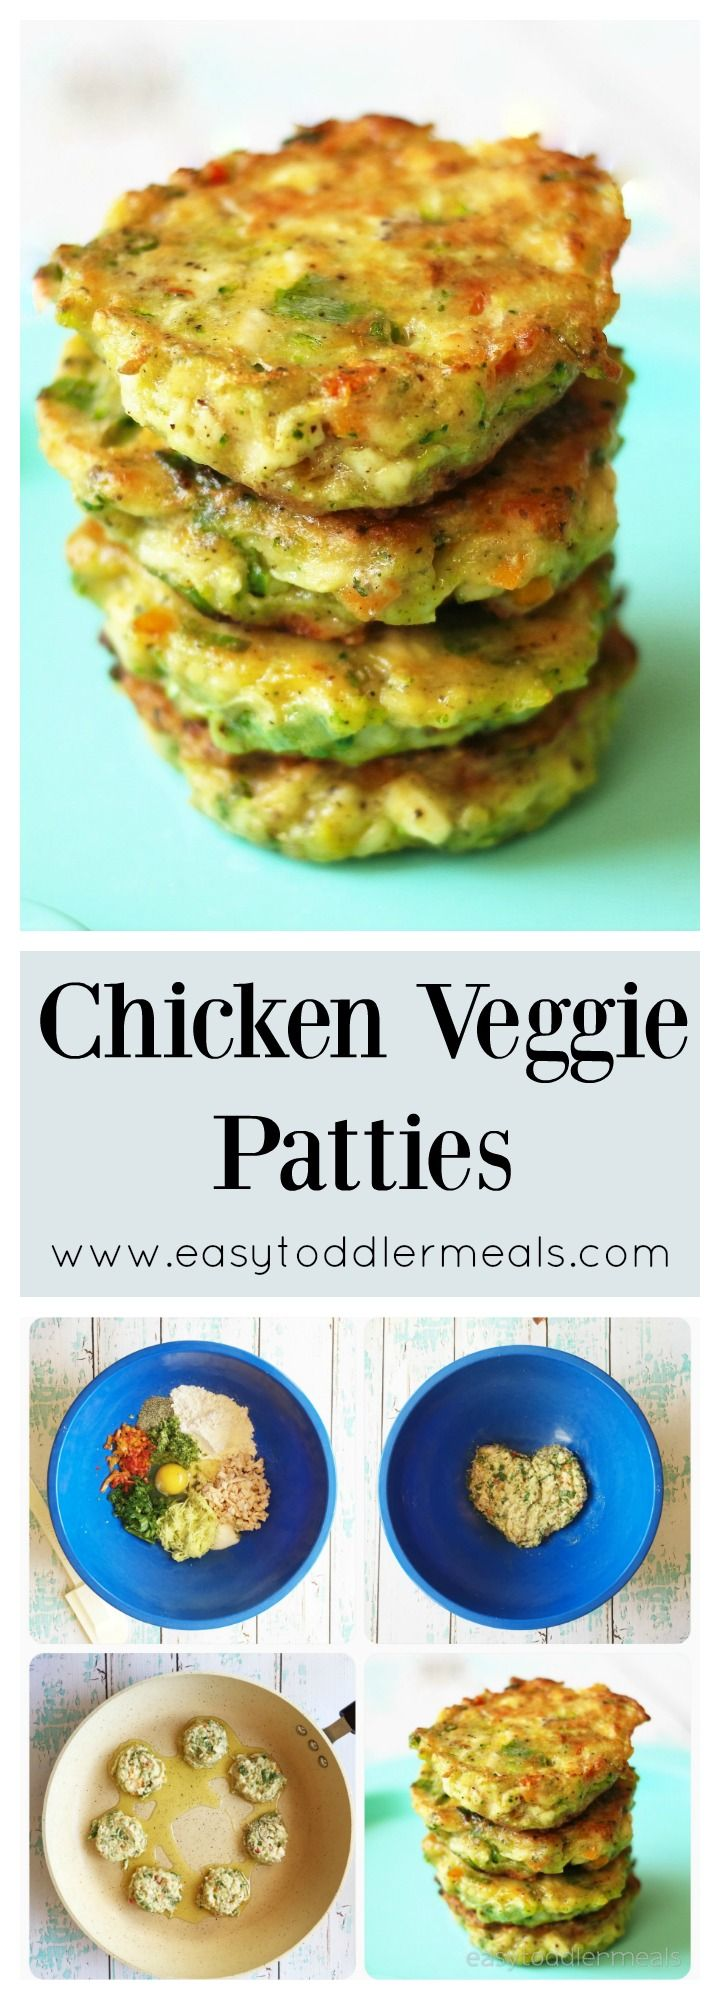 Packed with lots of veggies, but comes close to a chicken nugget! http://amzn.to/2rQI7Kx